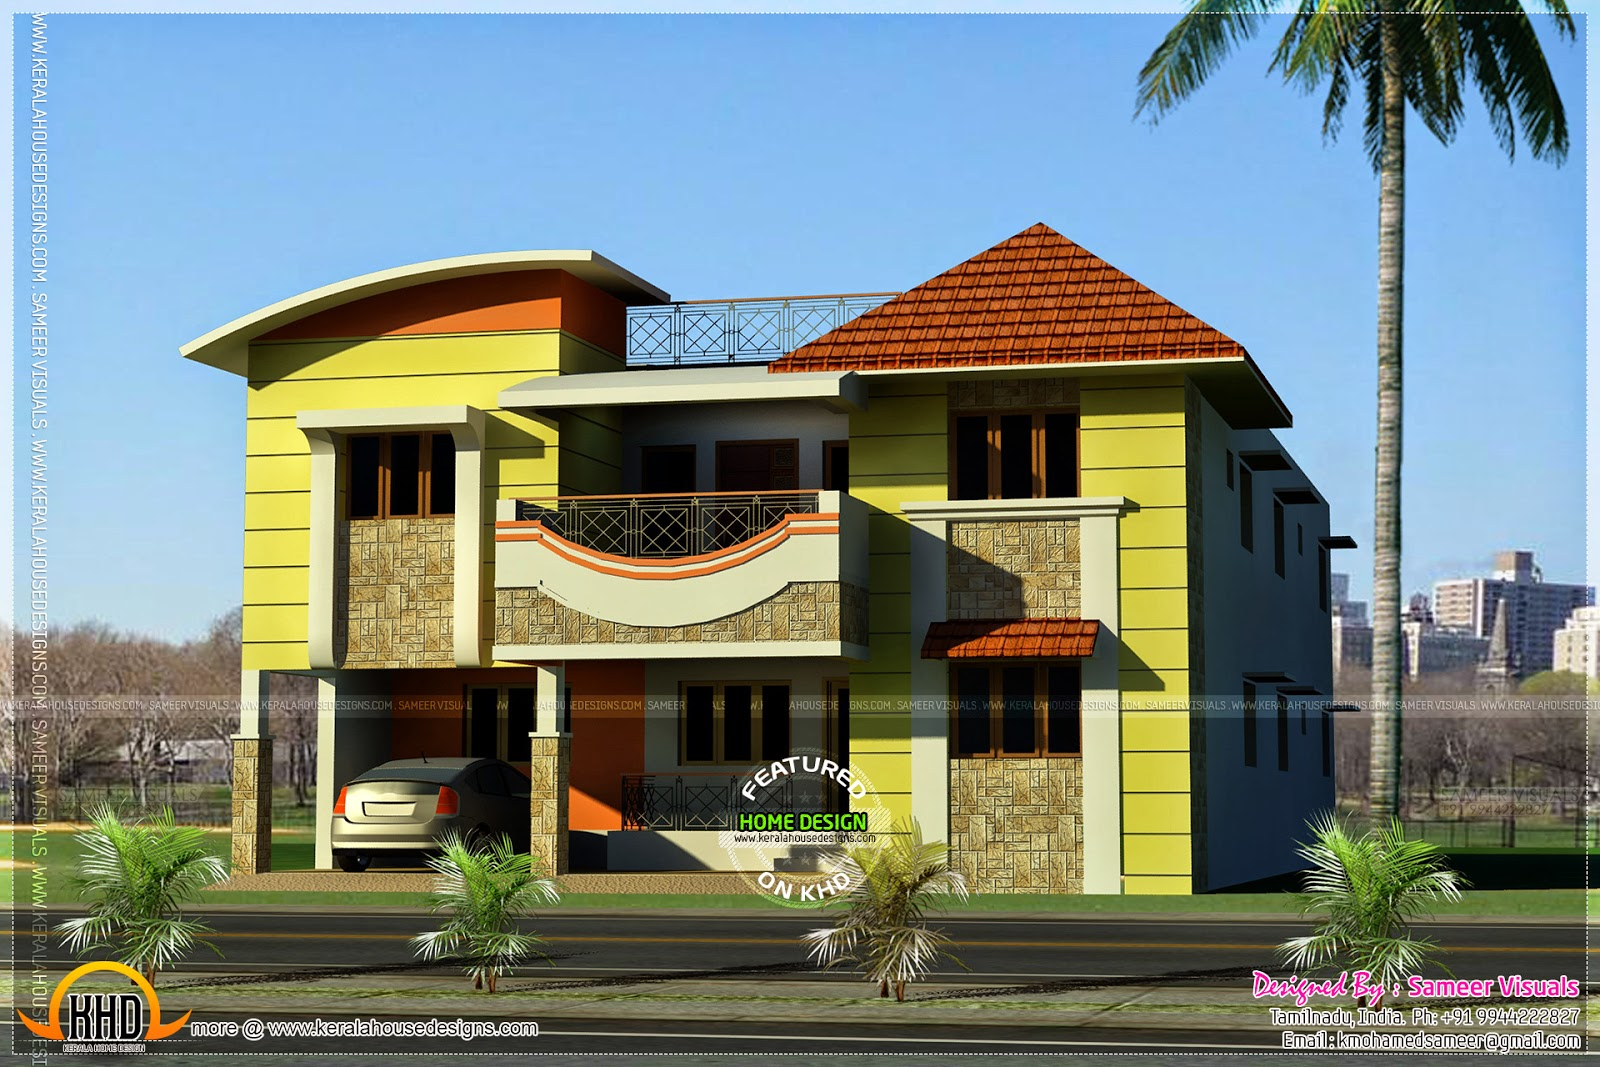 Luxury home design from tamilnadu india kerala home for Home designs in tamilnadu